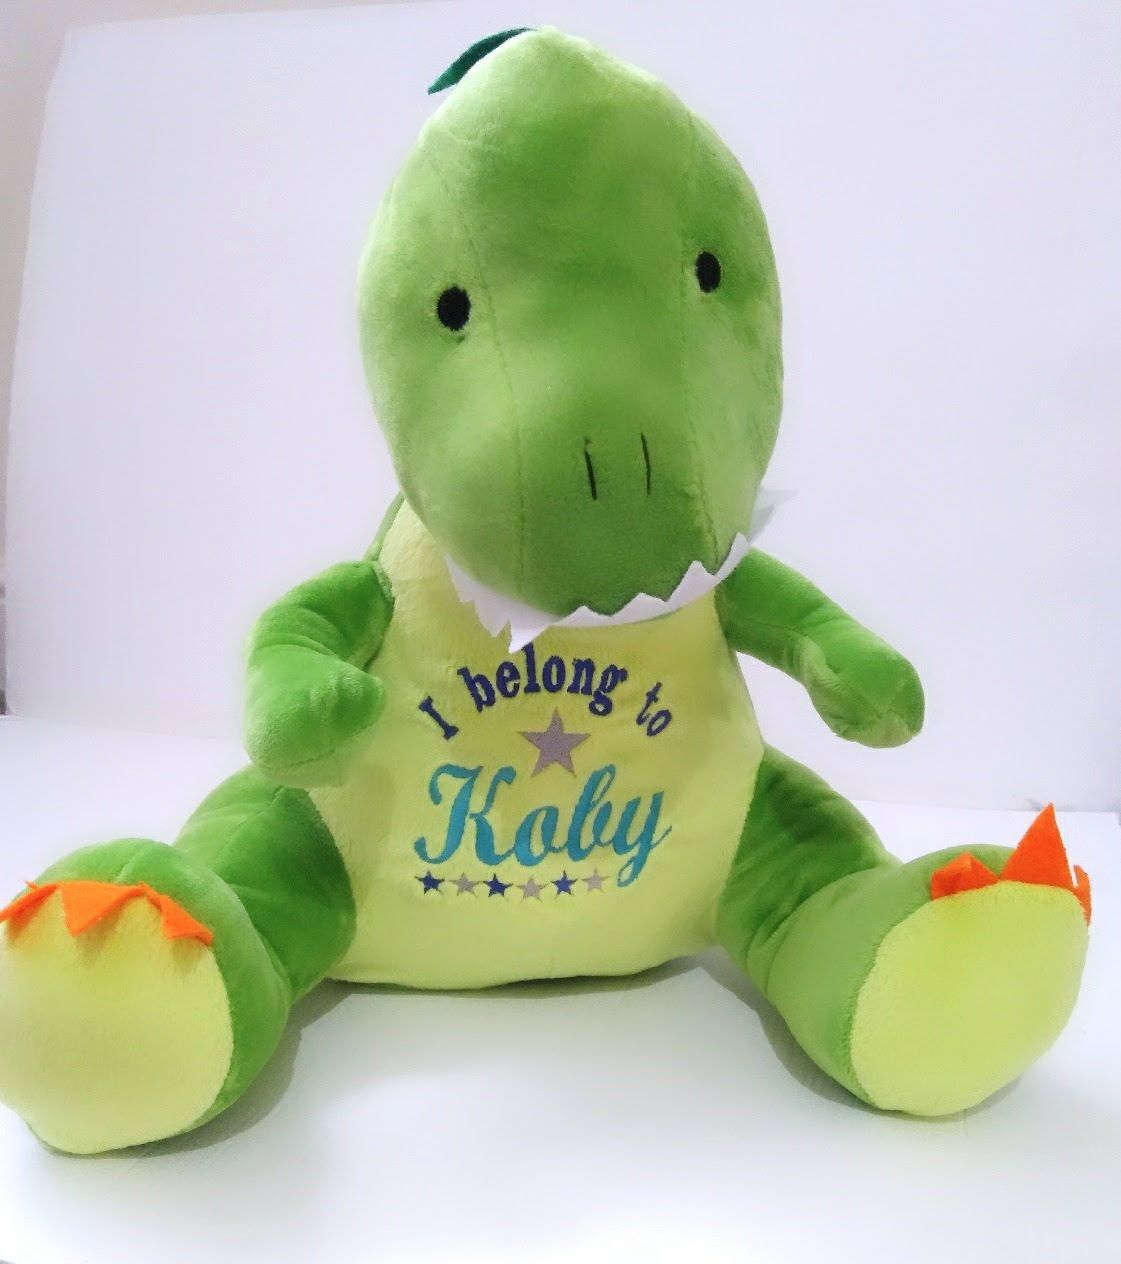 Personalised Soft Toy Dinosaur Teddy by Imprint Products